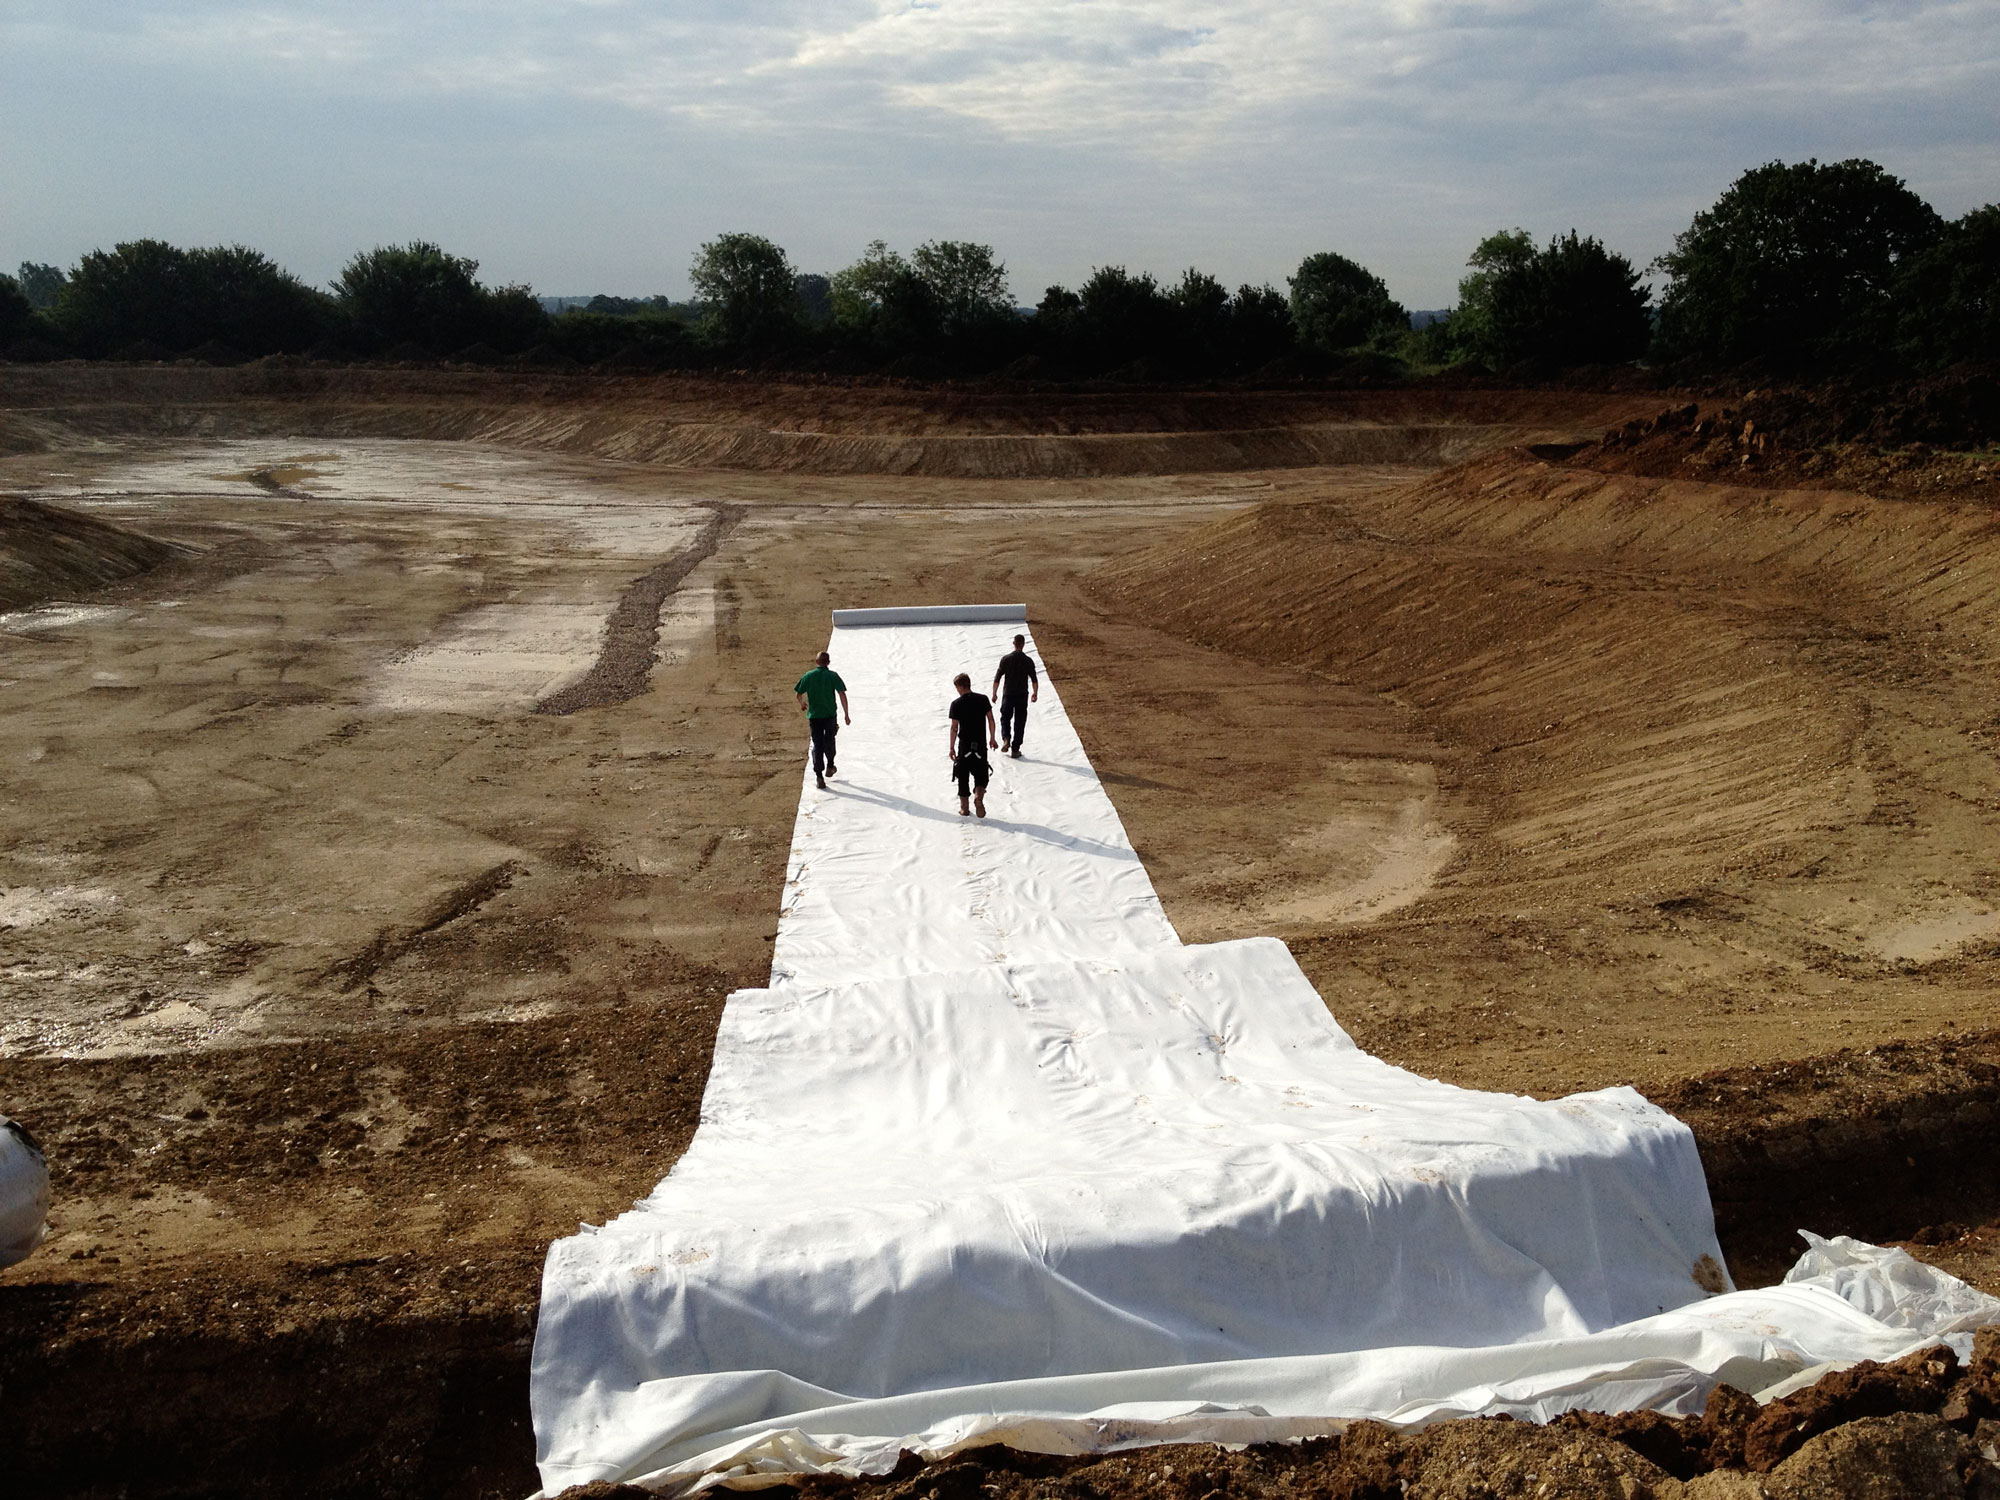 Underlay being installed in a lake